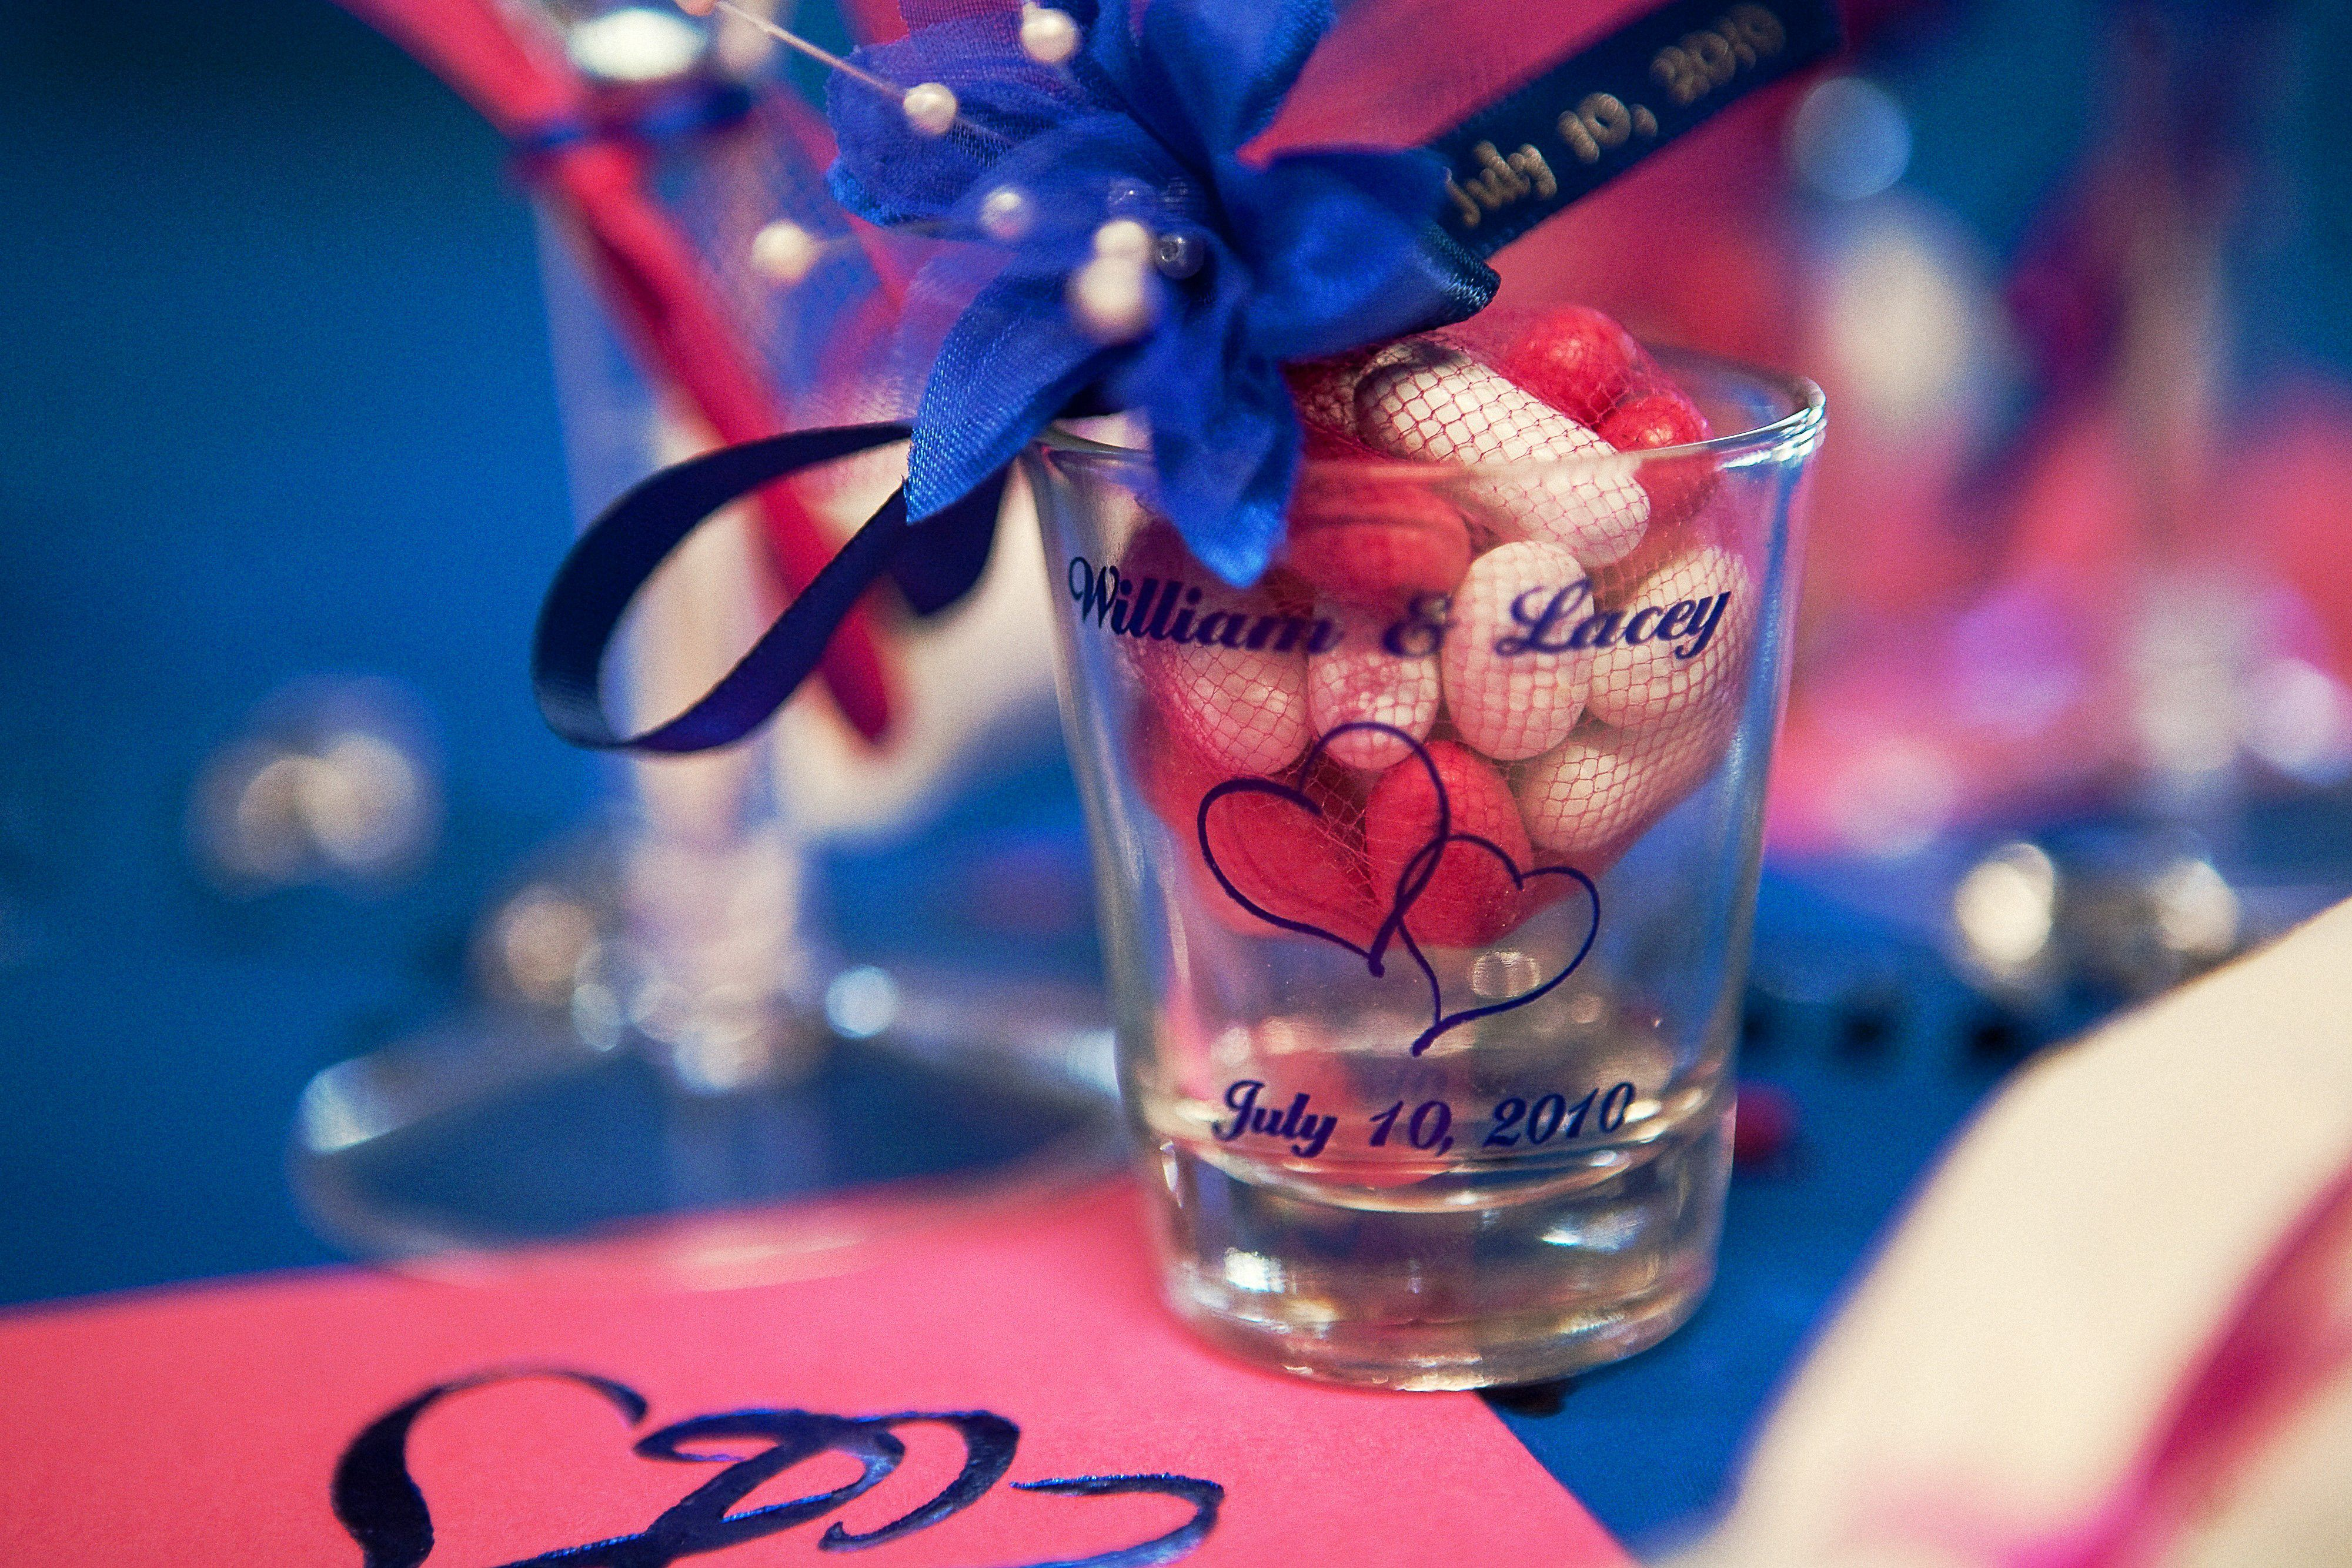 Wedding party favors. Personalized shot glasses! Photo by